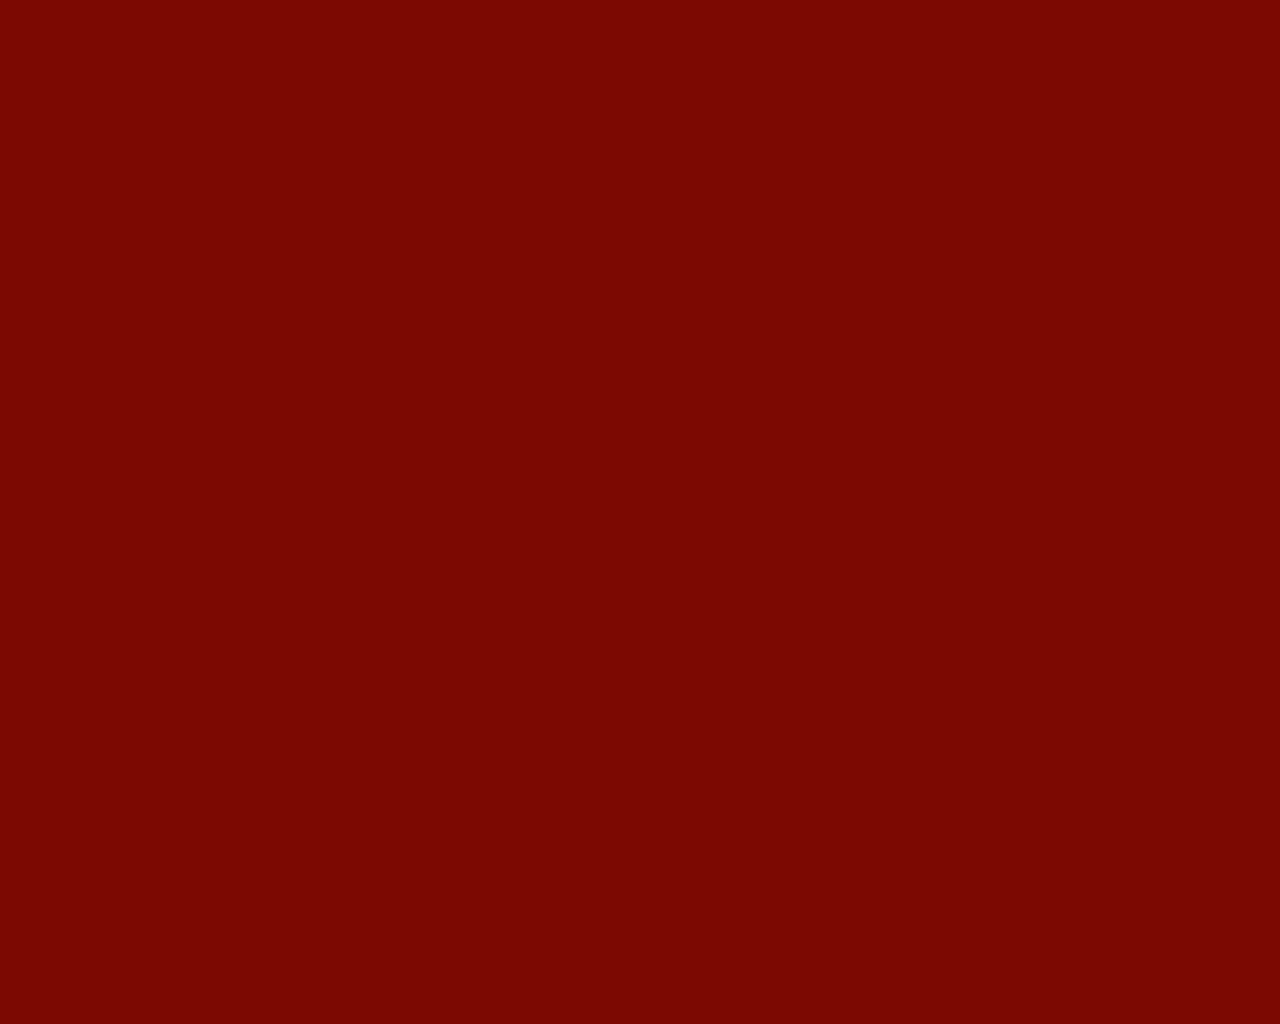 1280x1024 Barn Red Solid Color Background